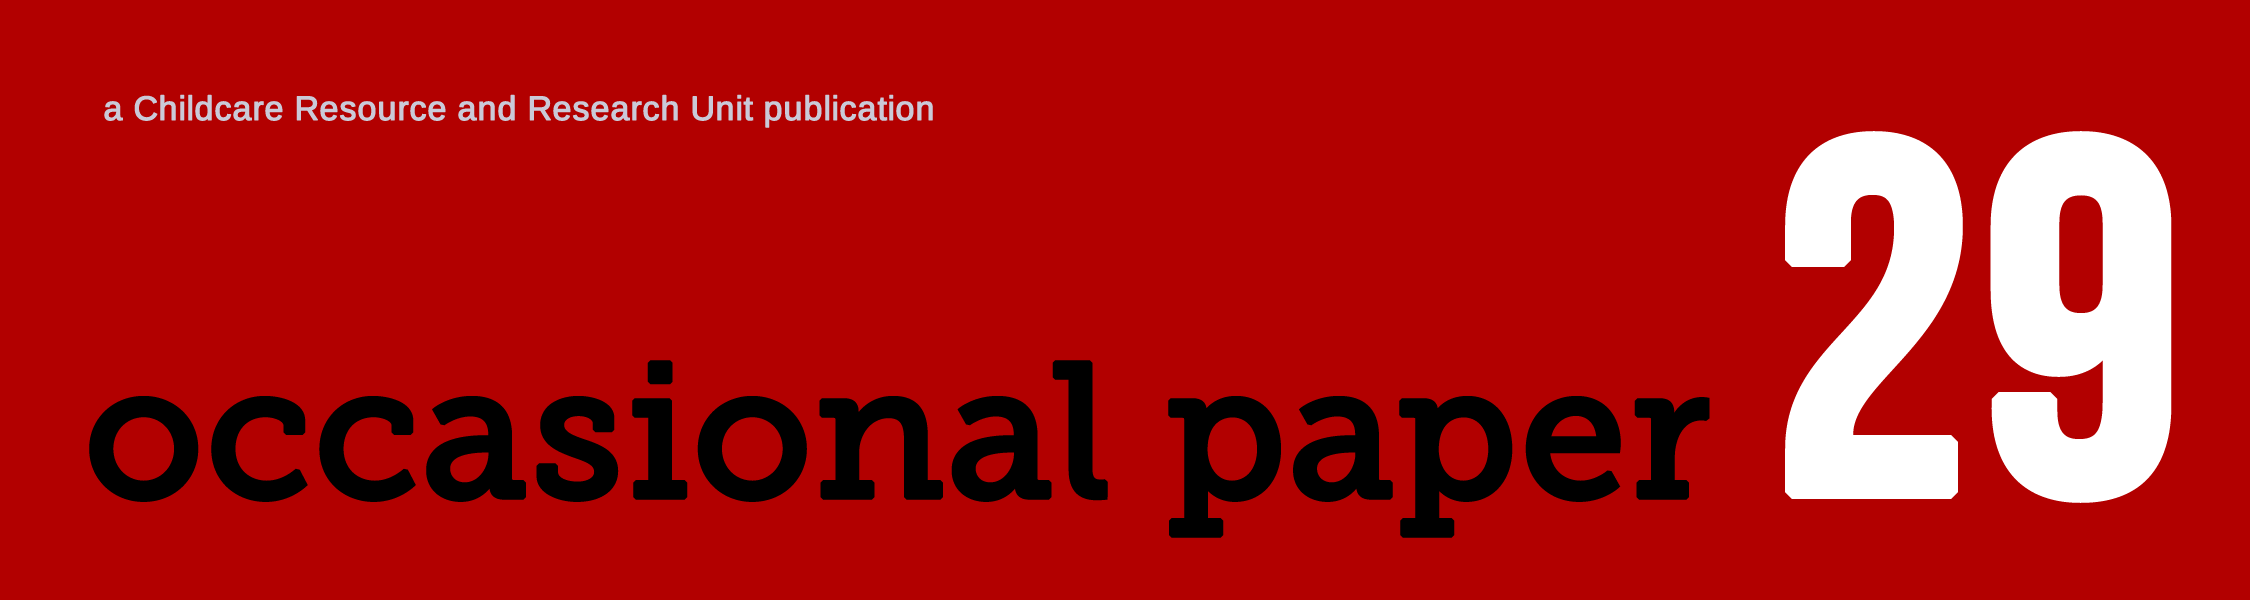 Occasional paper 29 logo